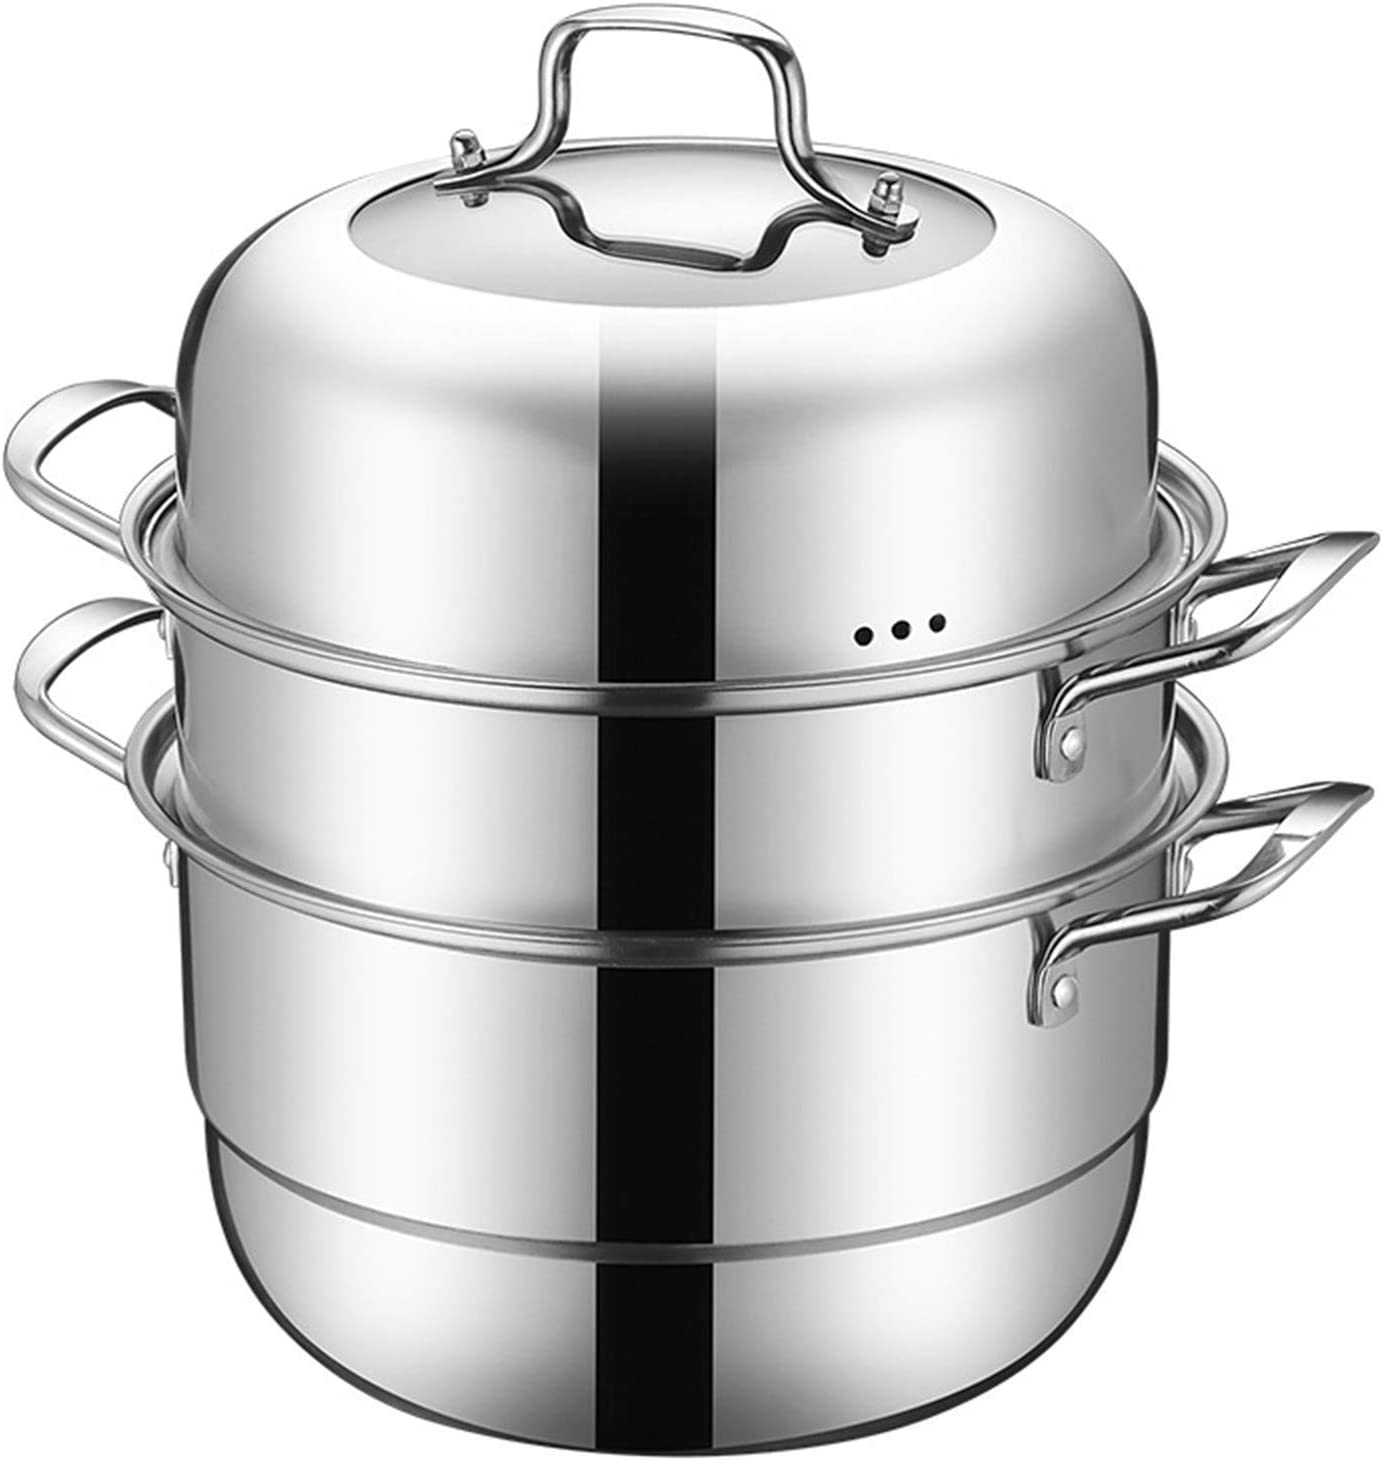 XH&XH Steamer Pot Stainless Steel Pot Food Steamer Multi Layer Pot Steam Boiler with Clear Lid for Single Bottom Kitchen 30cm